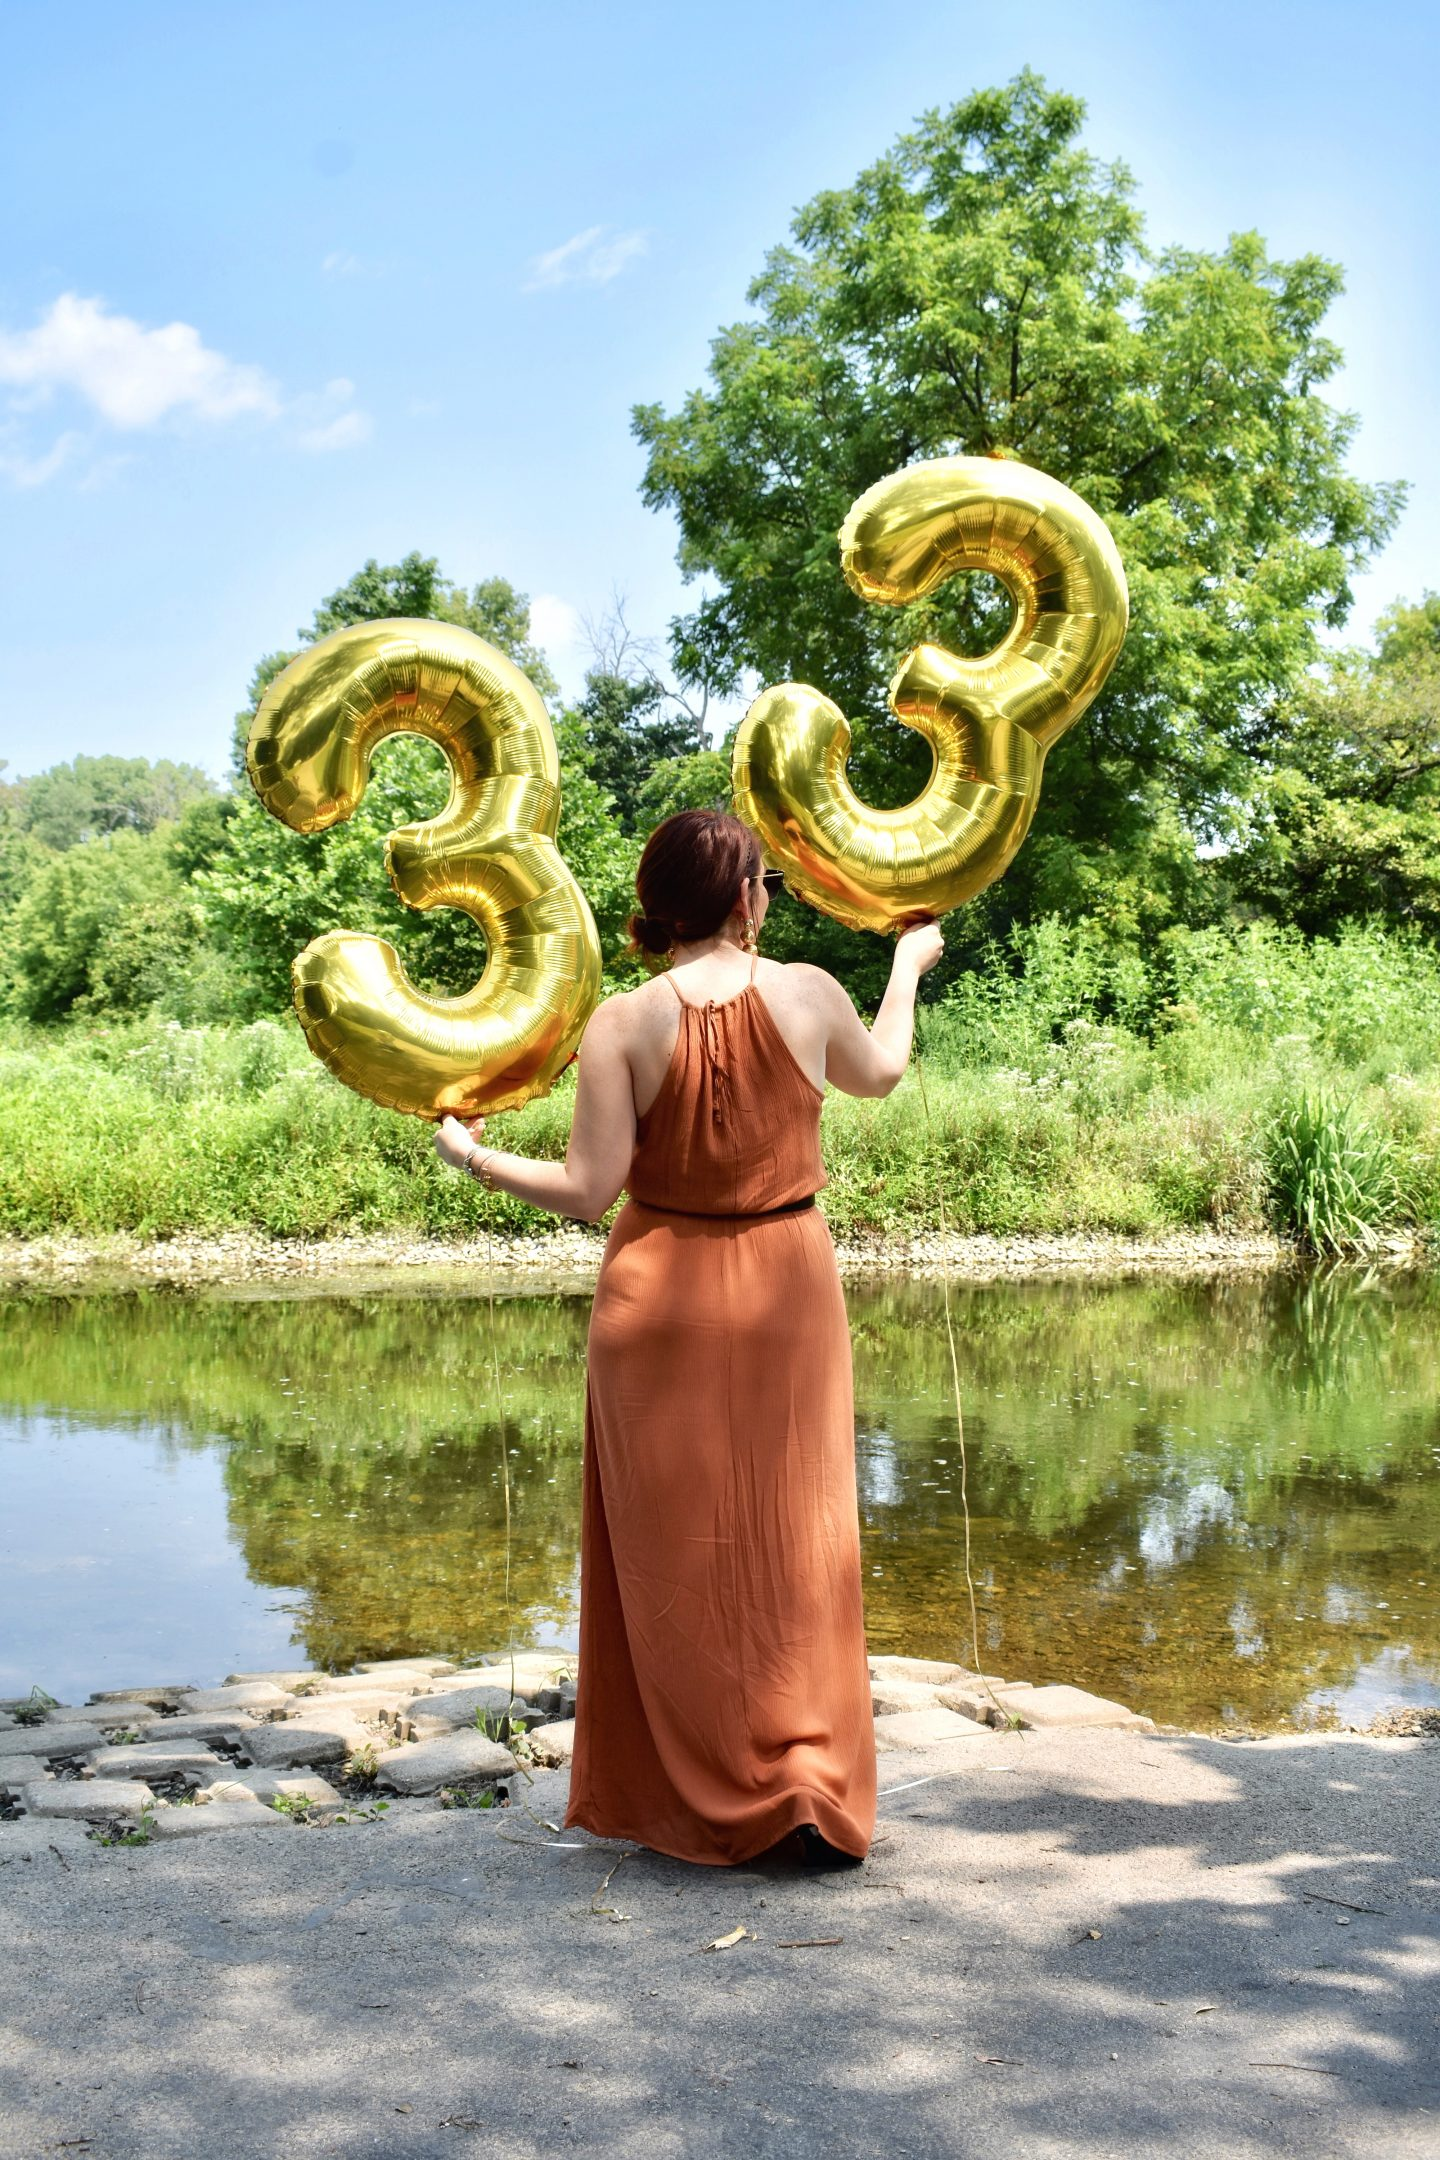 33 Things I've Learned This Year